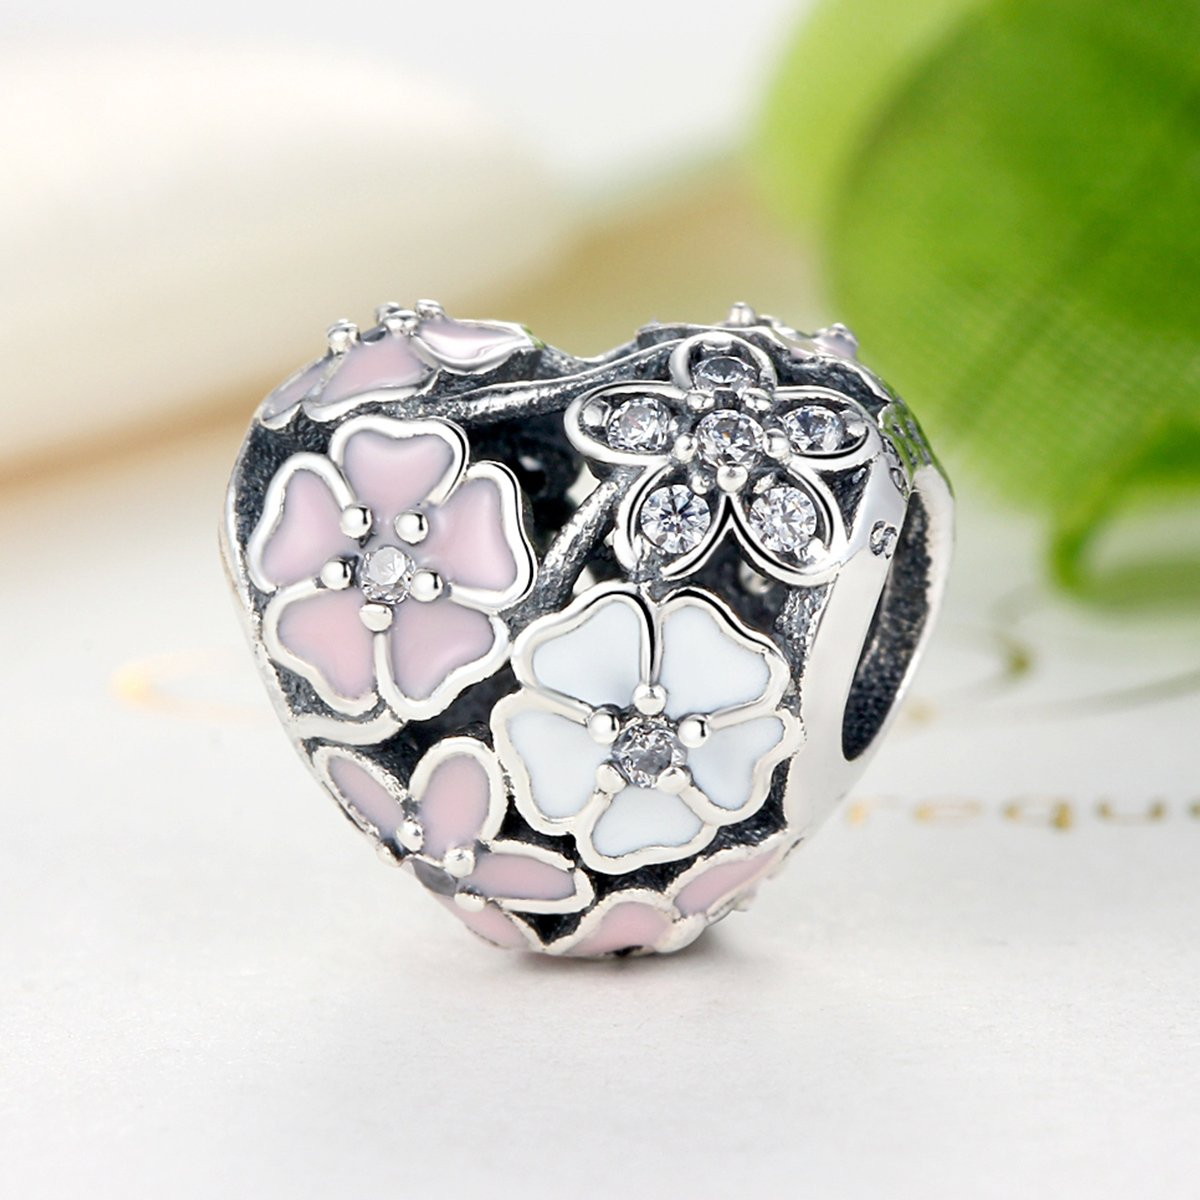 BAMOER 925 Sterling Silver Poetic Daisy Flower Heart Enameled CZ Solid Charms Beads for DIY Bracelet Accessories by BAMOER (Image #3)